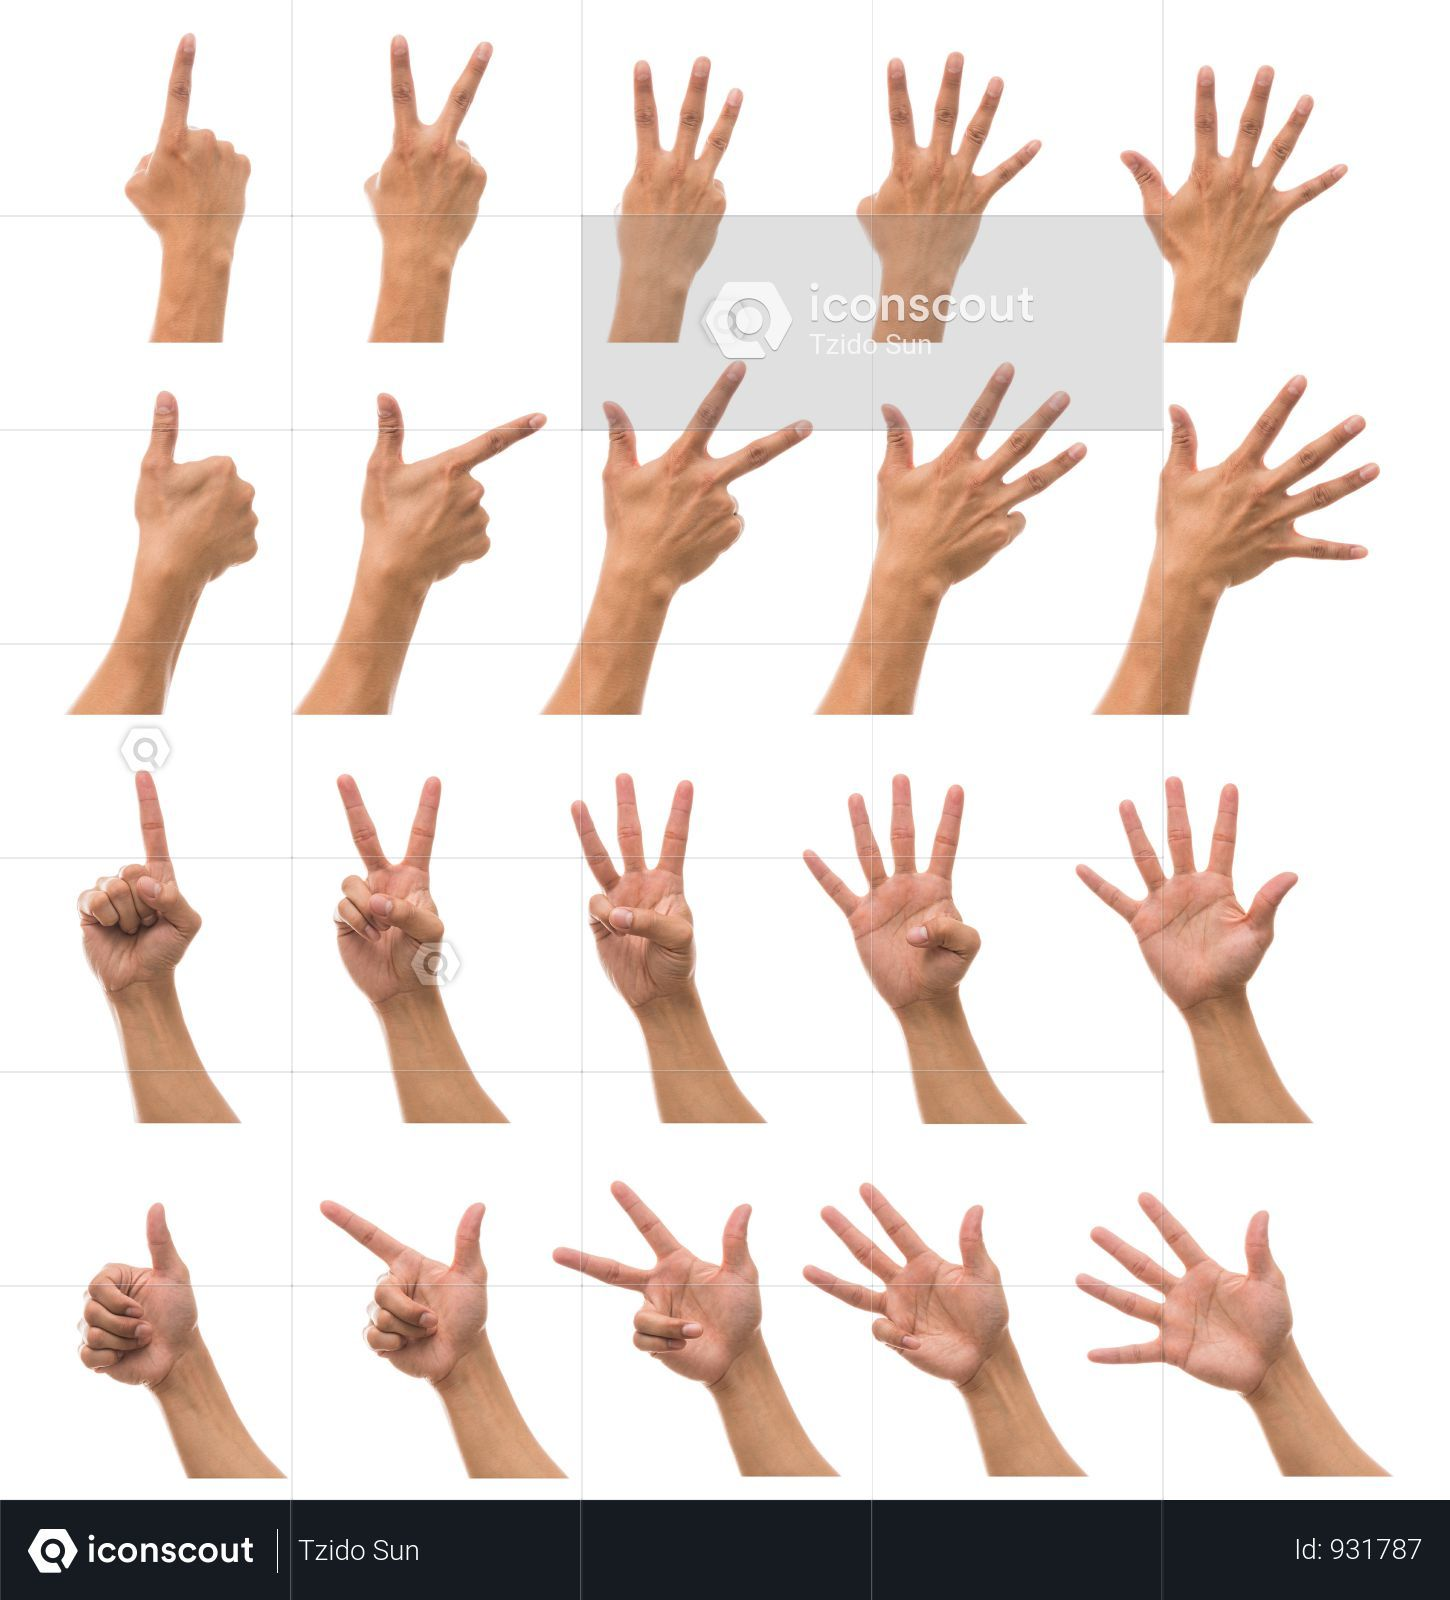 Premium Sum 10 Picture Of Man Hand In Front And Back Side With Show Number Collection Against White Background Photo Download In Png Jpg Format White Background Photo 10 Picture White Background